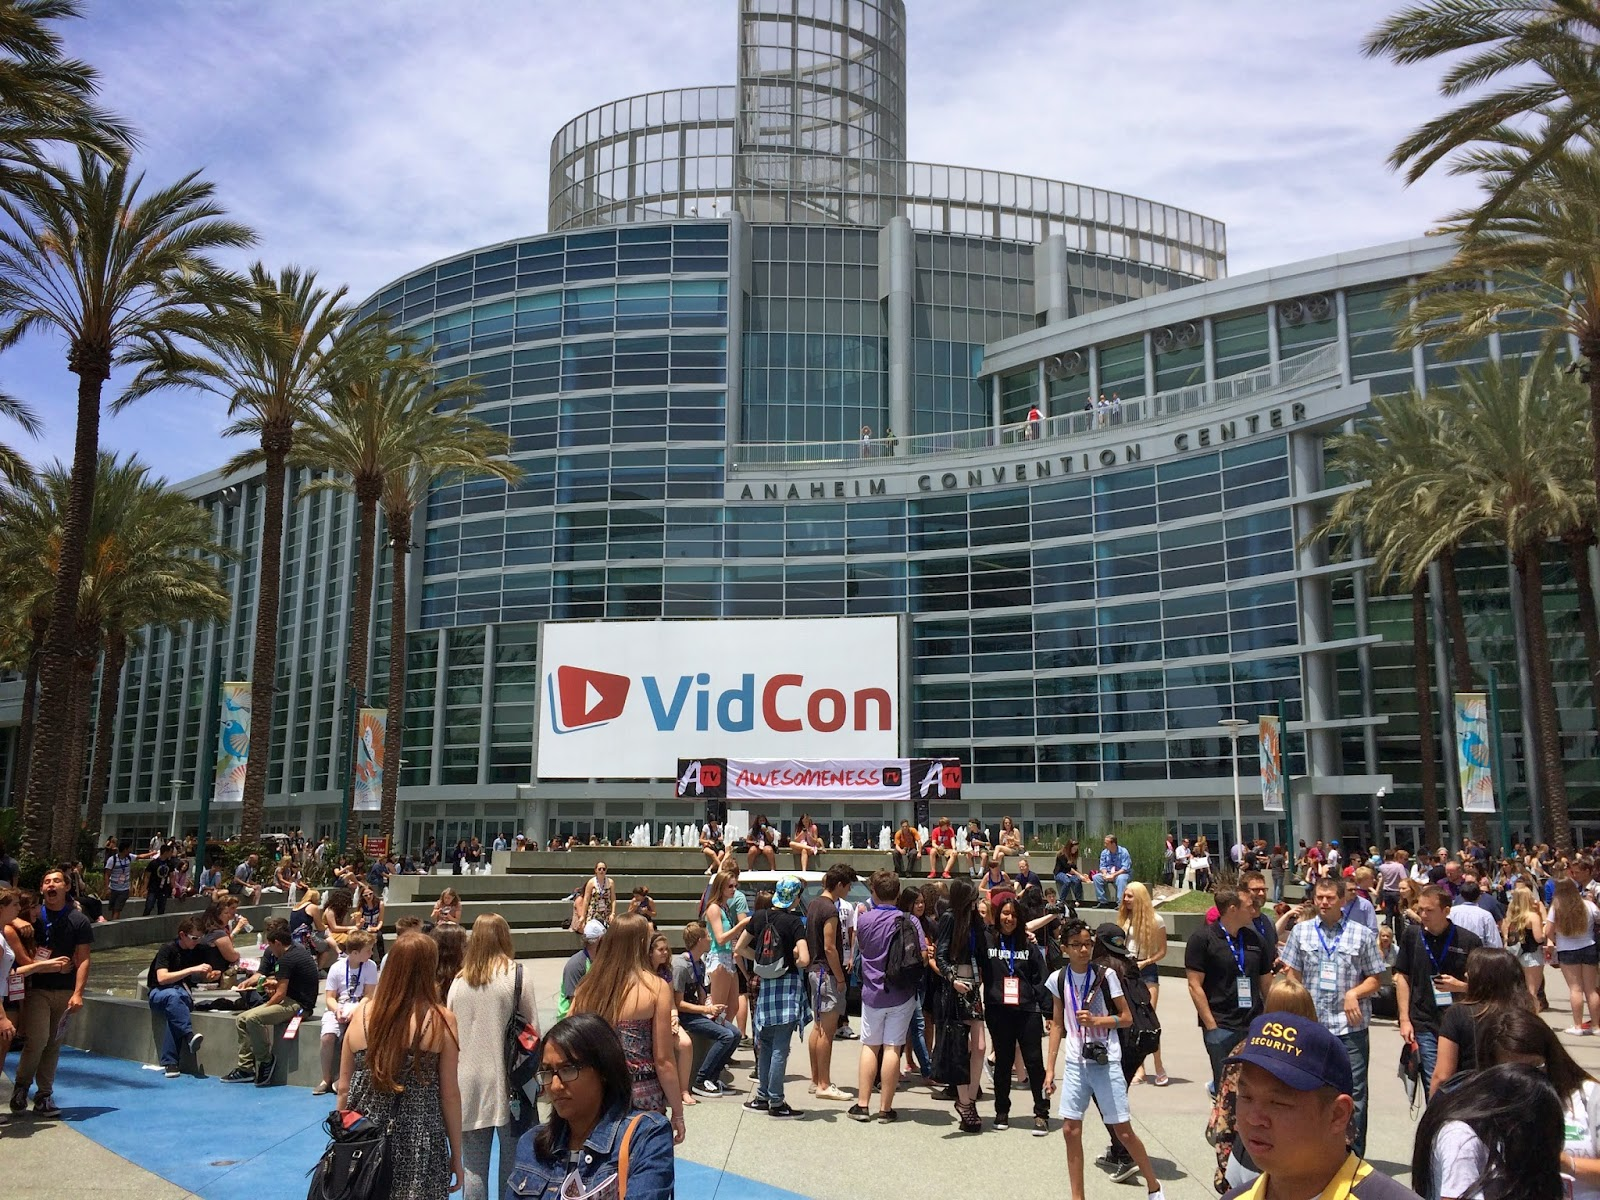 VidCon is changing in an important (and safe) way